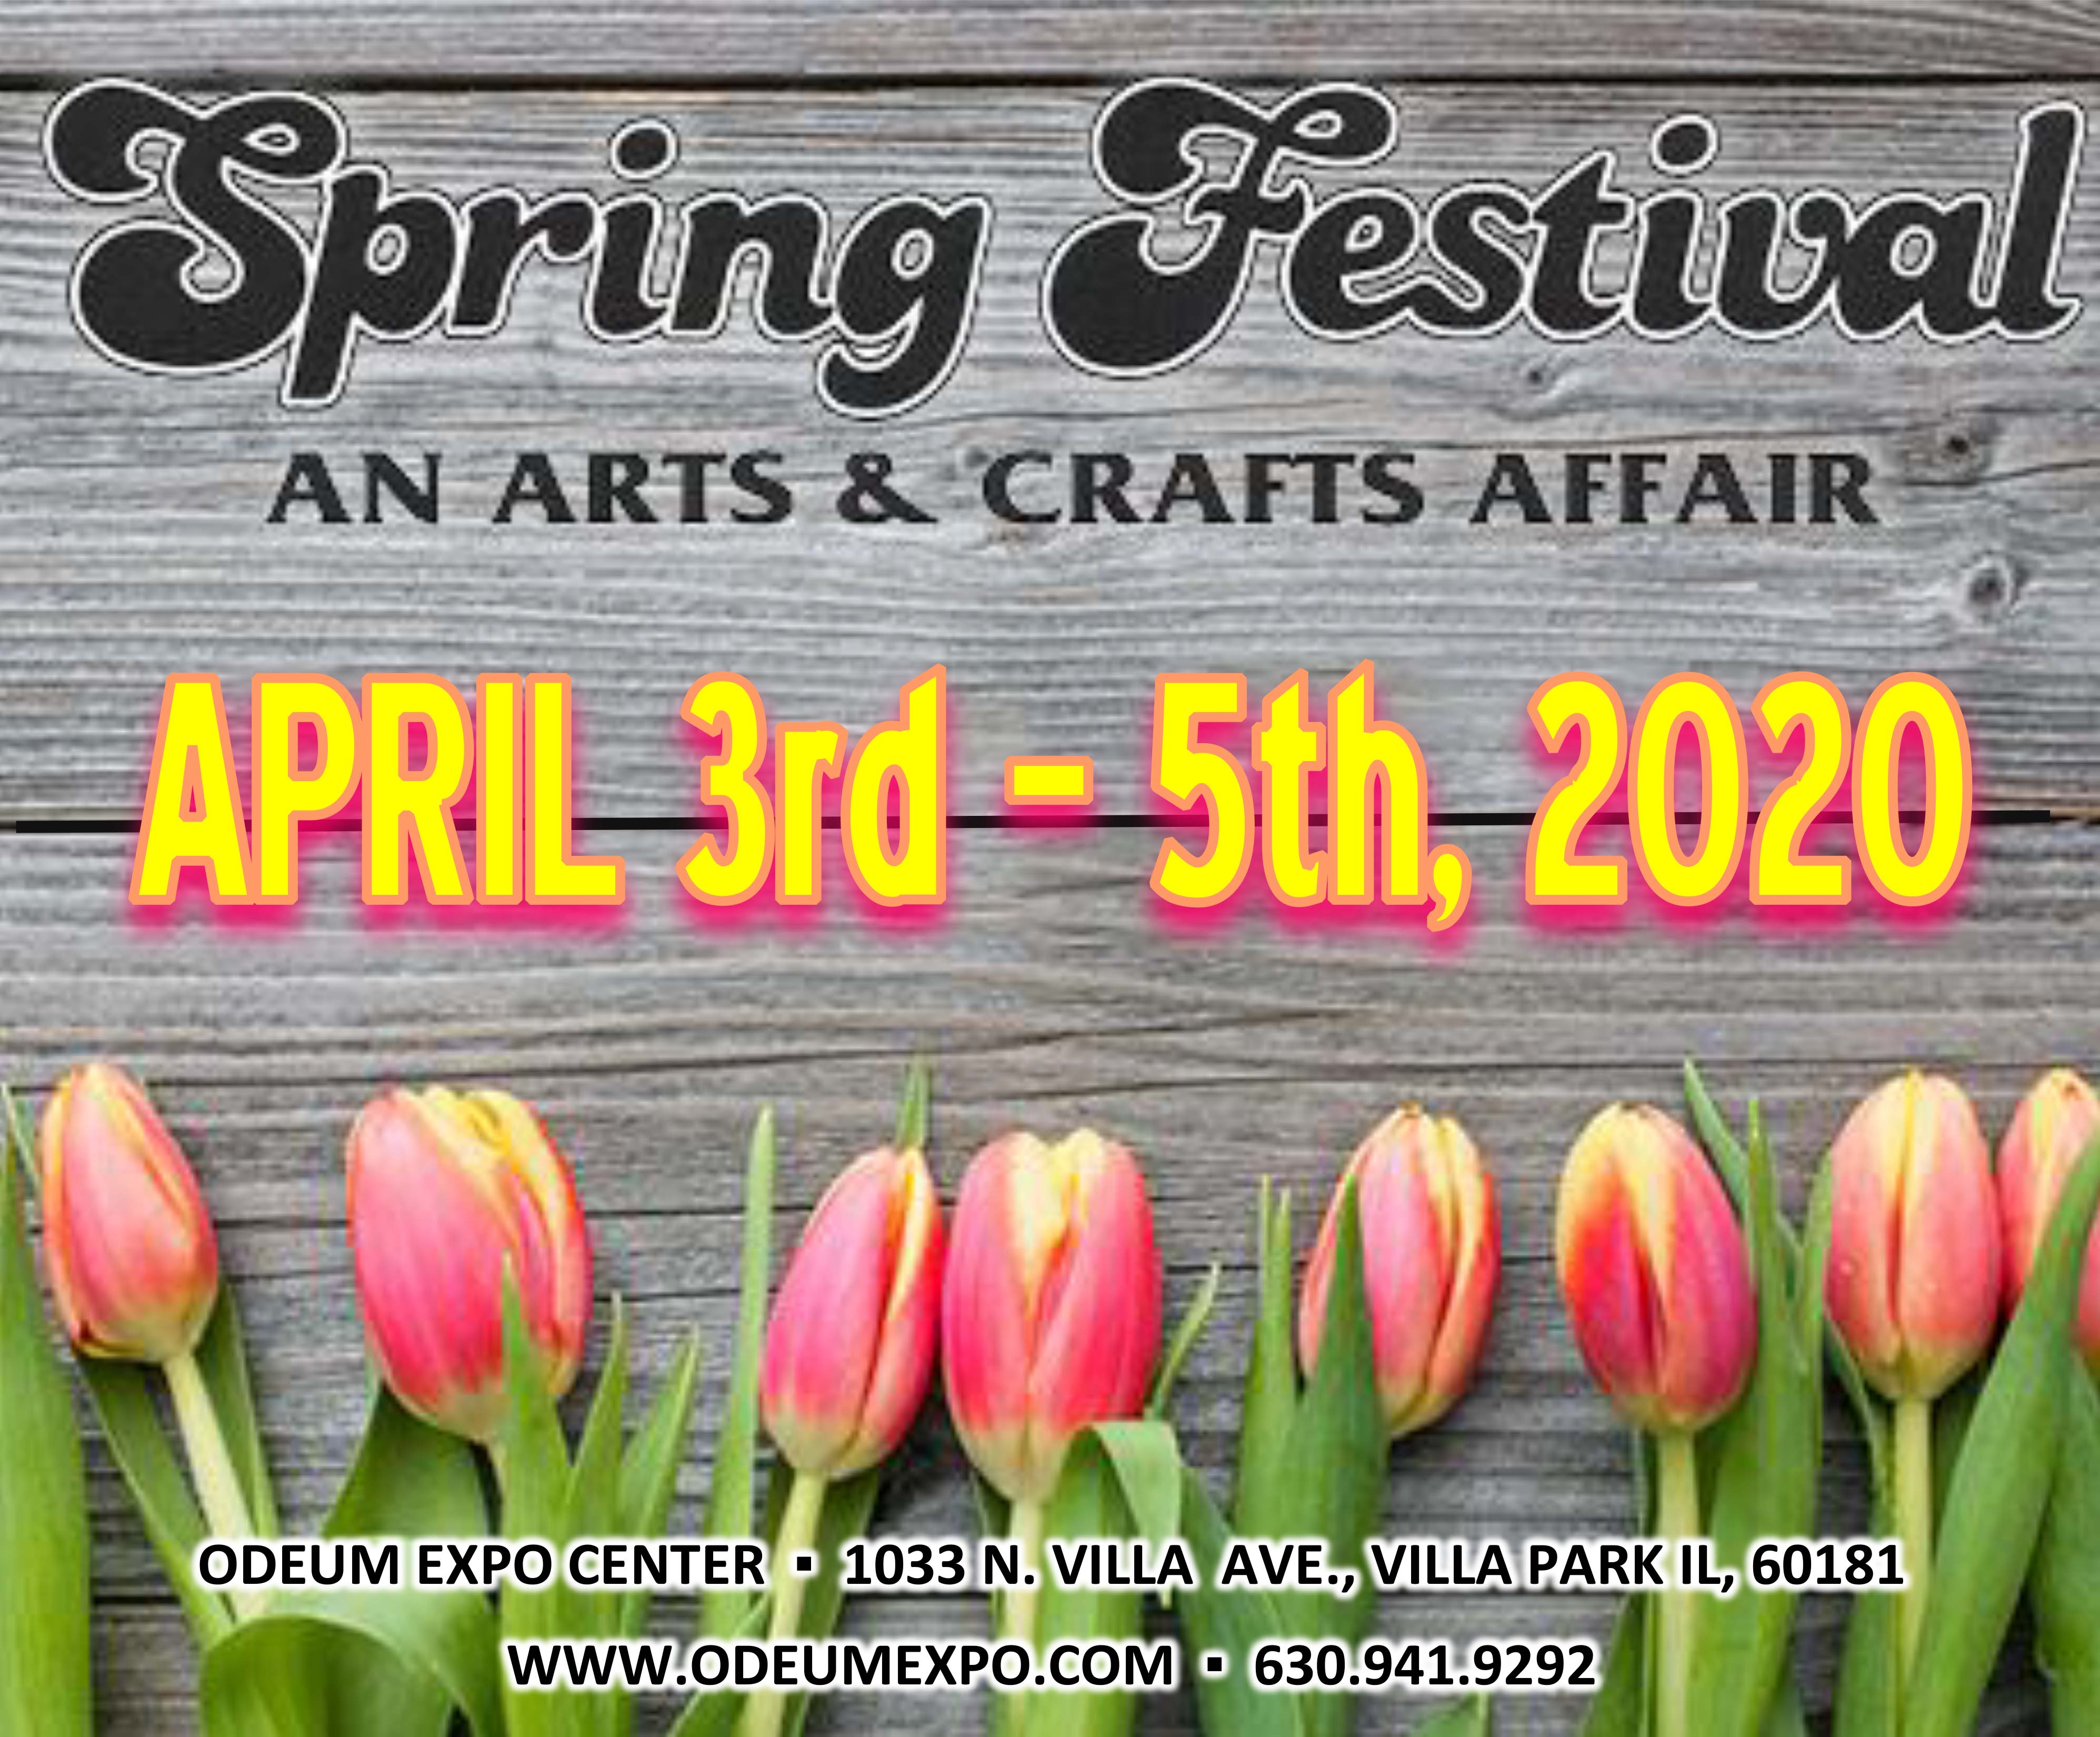 Logo for Spring Festival An Arts & Crafts Affair April 3-5, 2020 at the Odeum Expo Center in Villa Park, IL